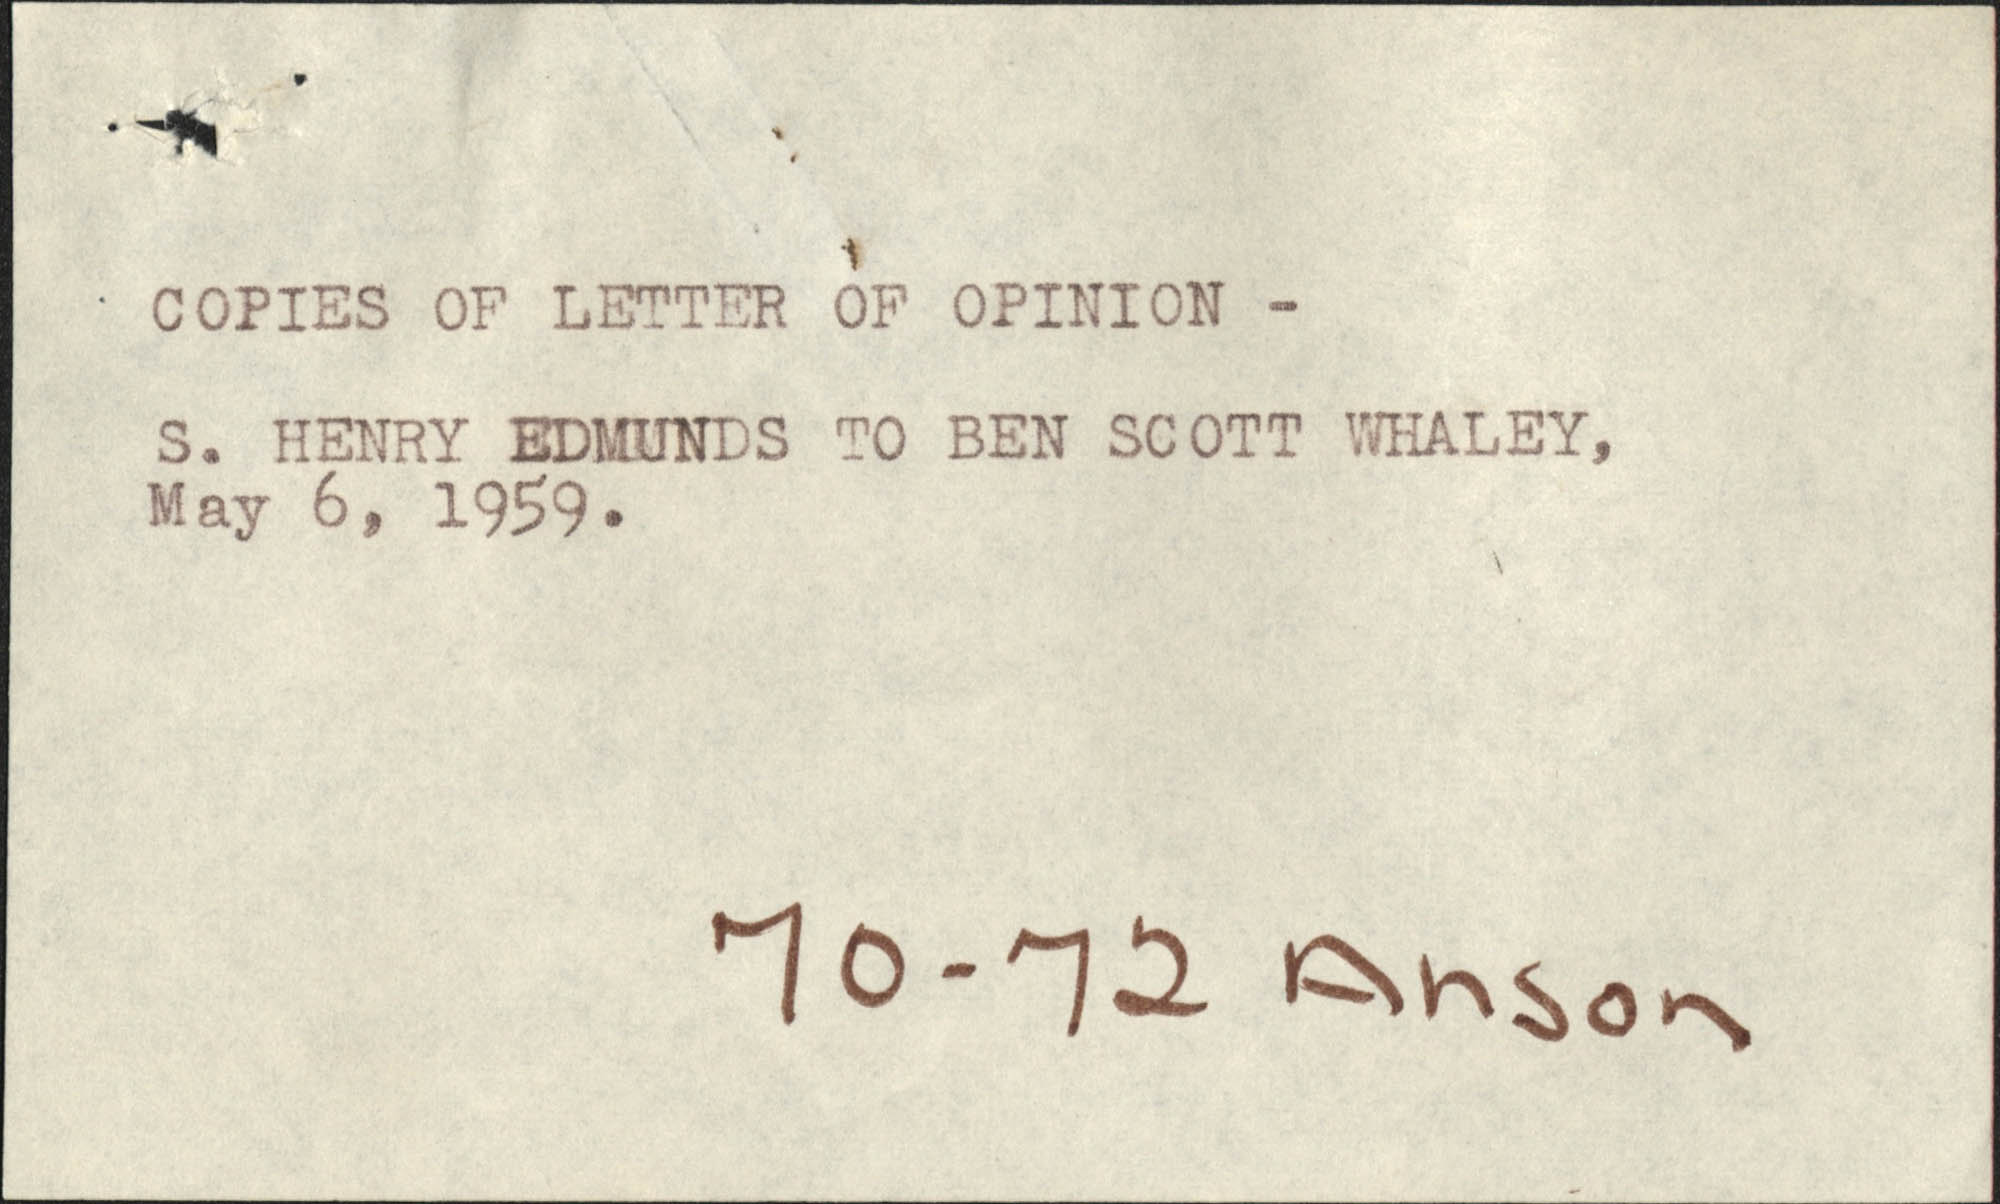 Letter from S. Henry Edmunds to Ben Scott Whaley, May 6, 1959